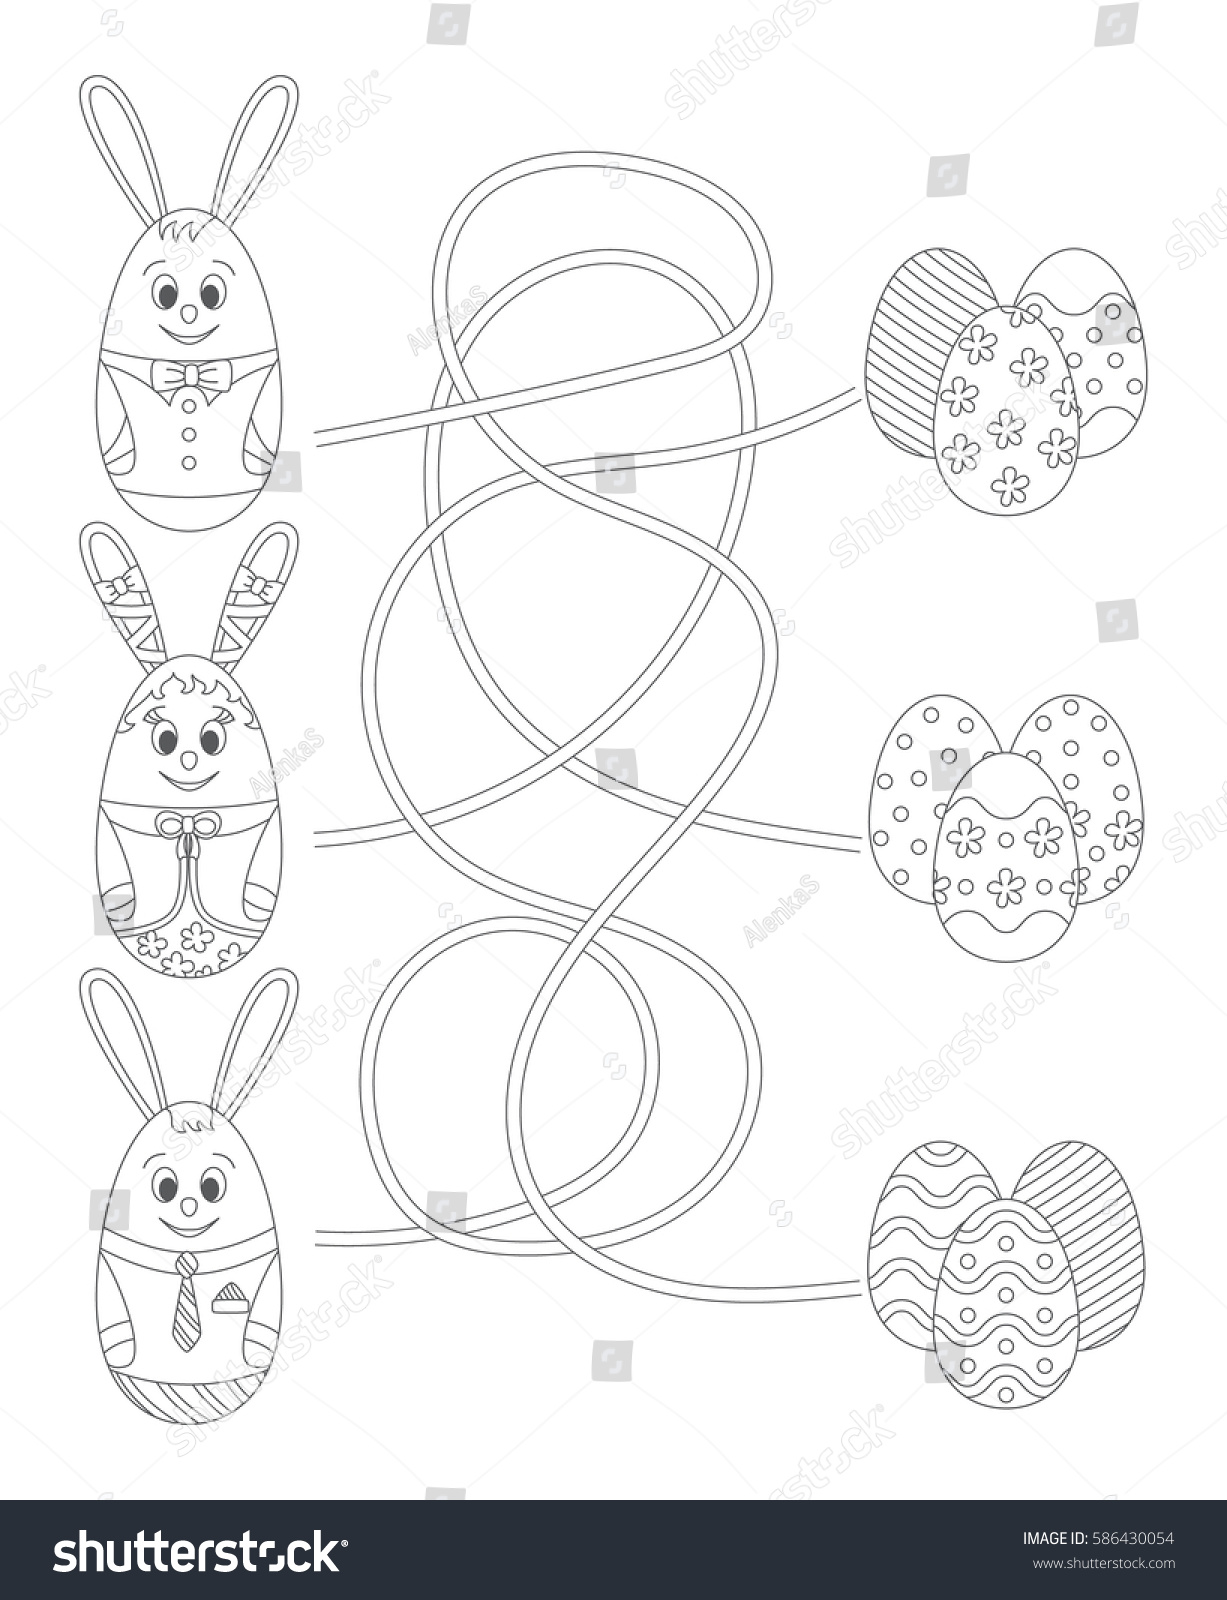 Maze Coloring Page. Good Best Mazes Images On Pinterest Activities ...